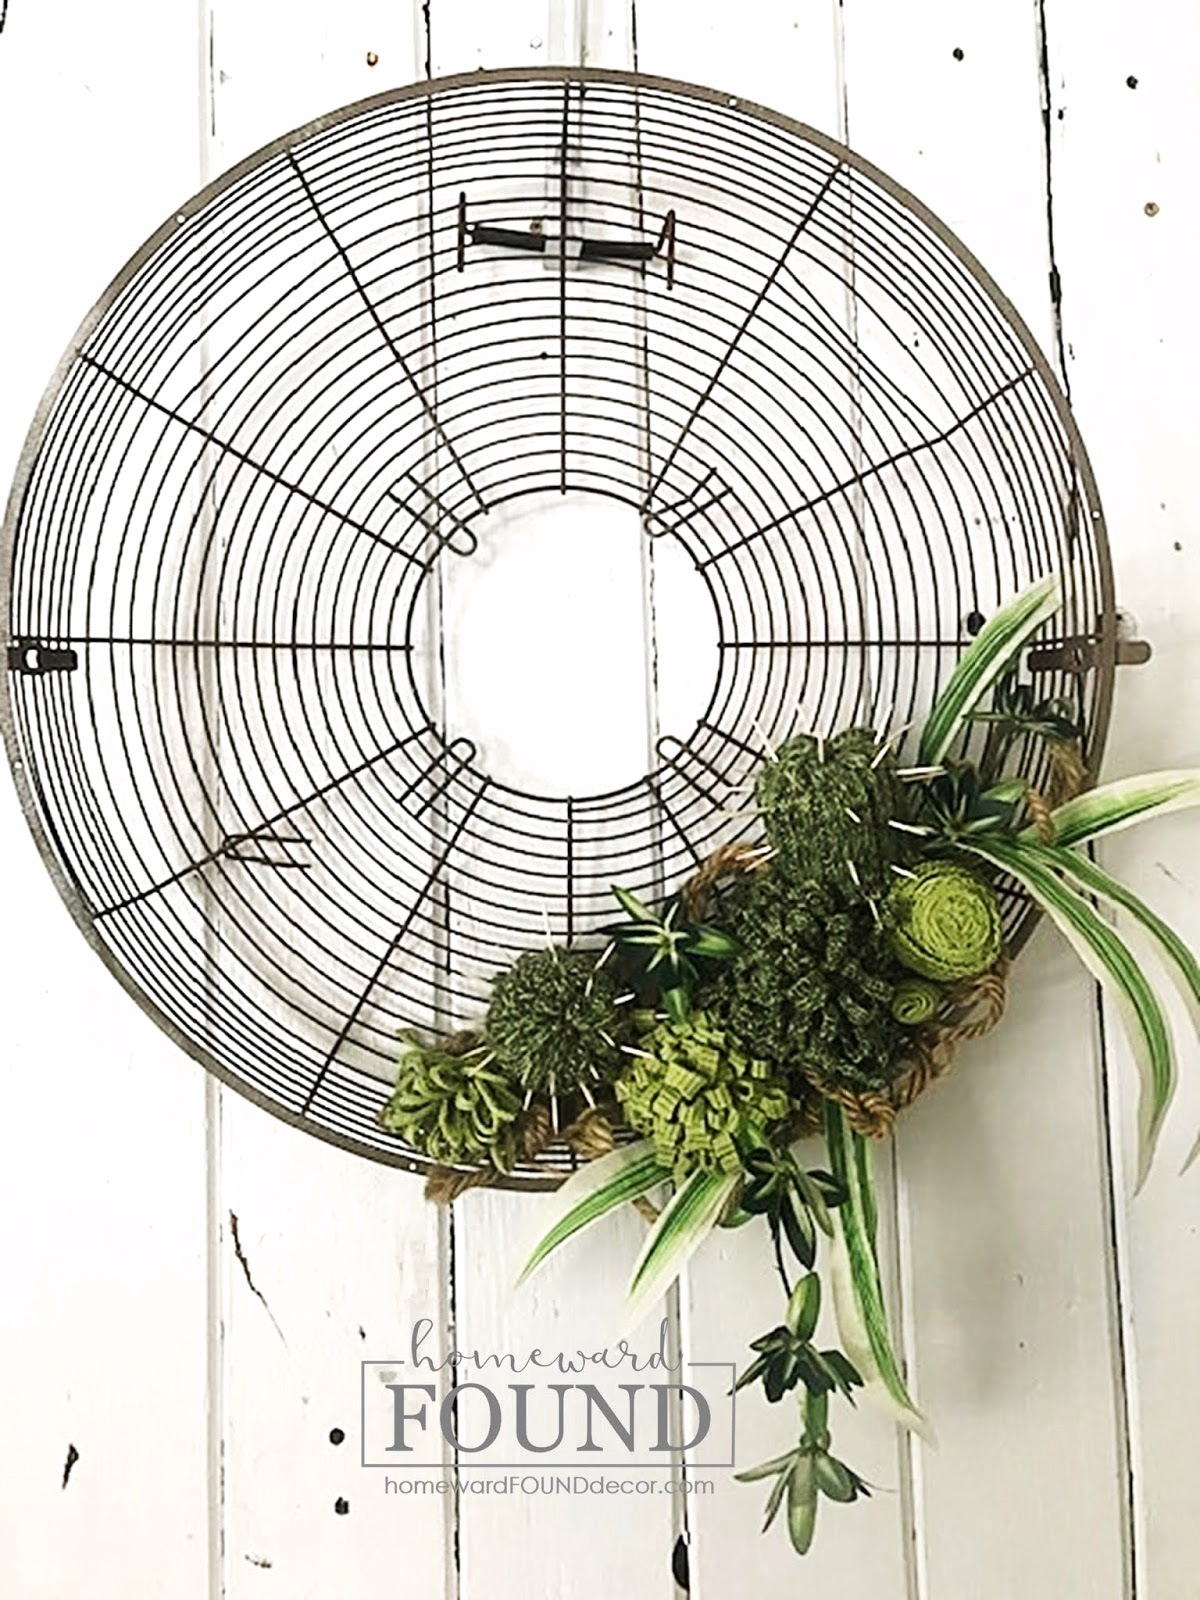 Fan cover faux succulent wreath by Homeward Found, featured on DIY Salvaged Junk Projects 540 on Funky Junk!